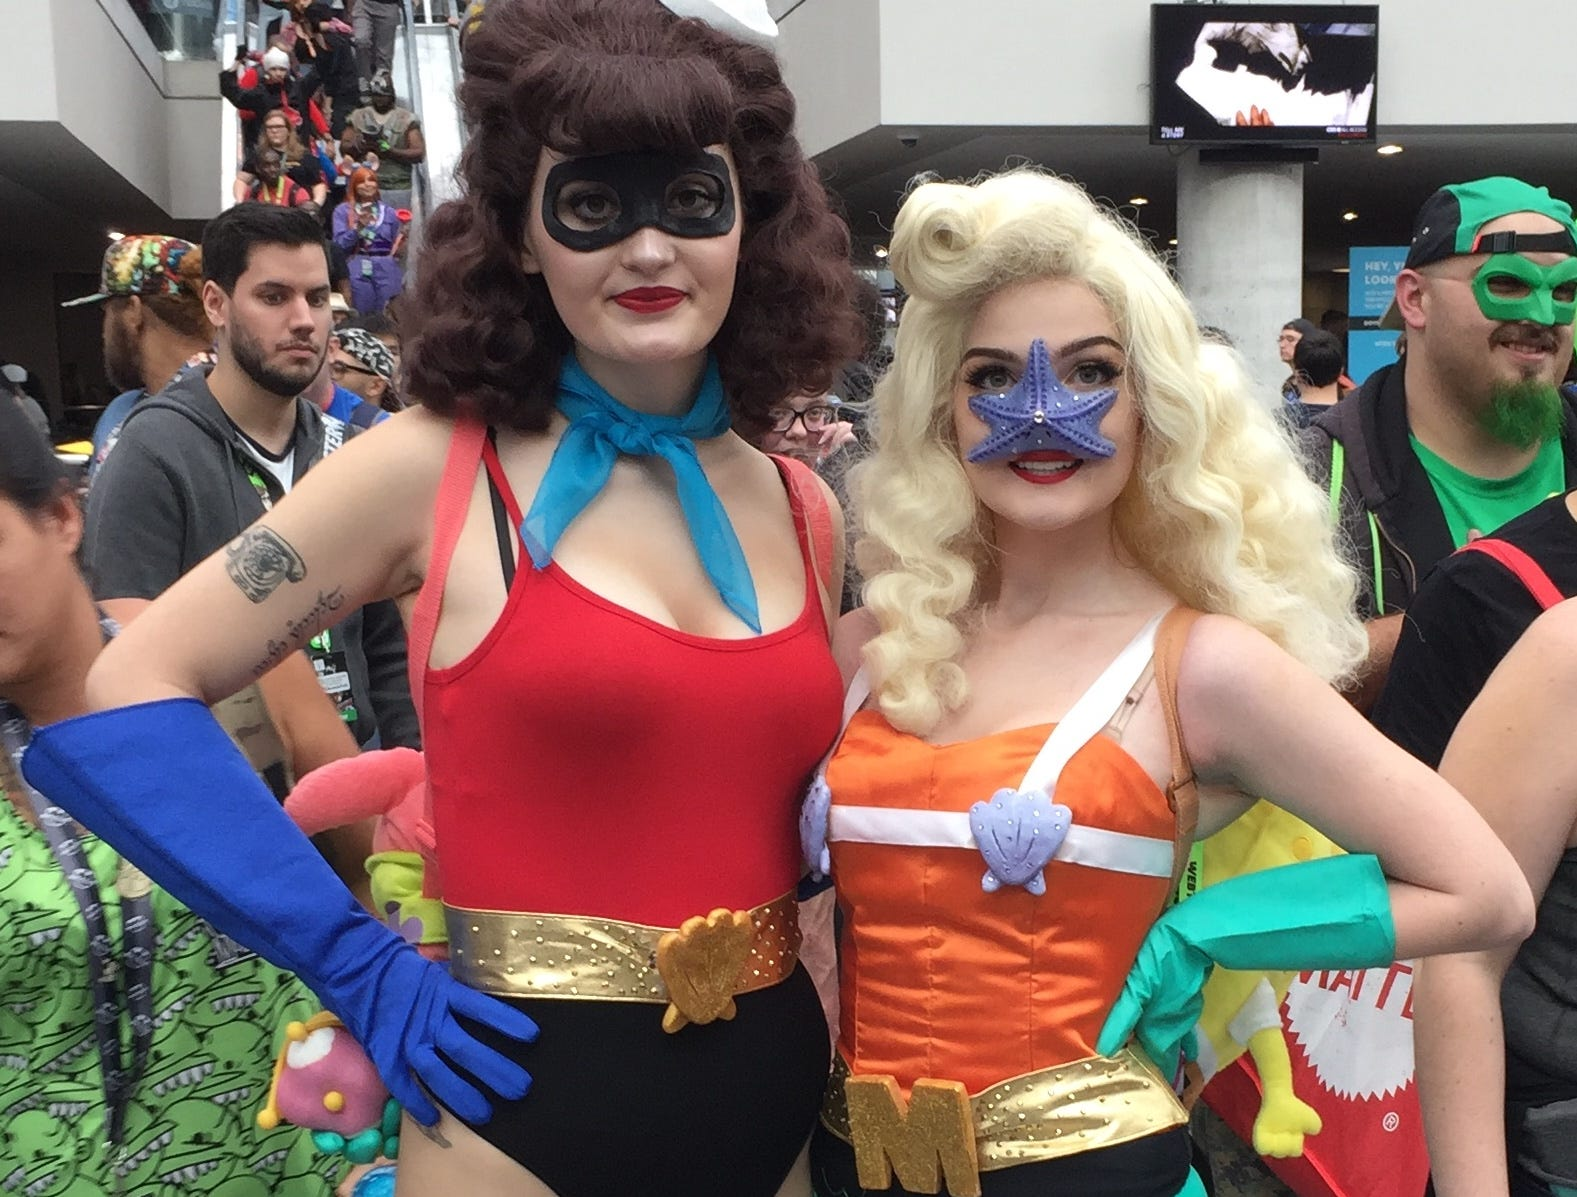 Scenes from the final day of New York Comic on Sunday, Oct. 7, 2018